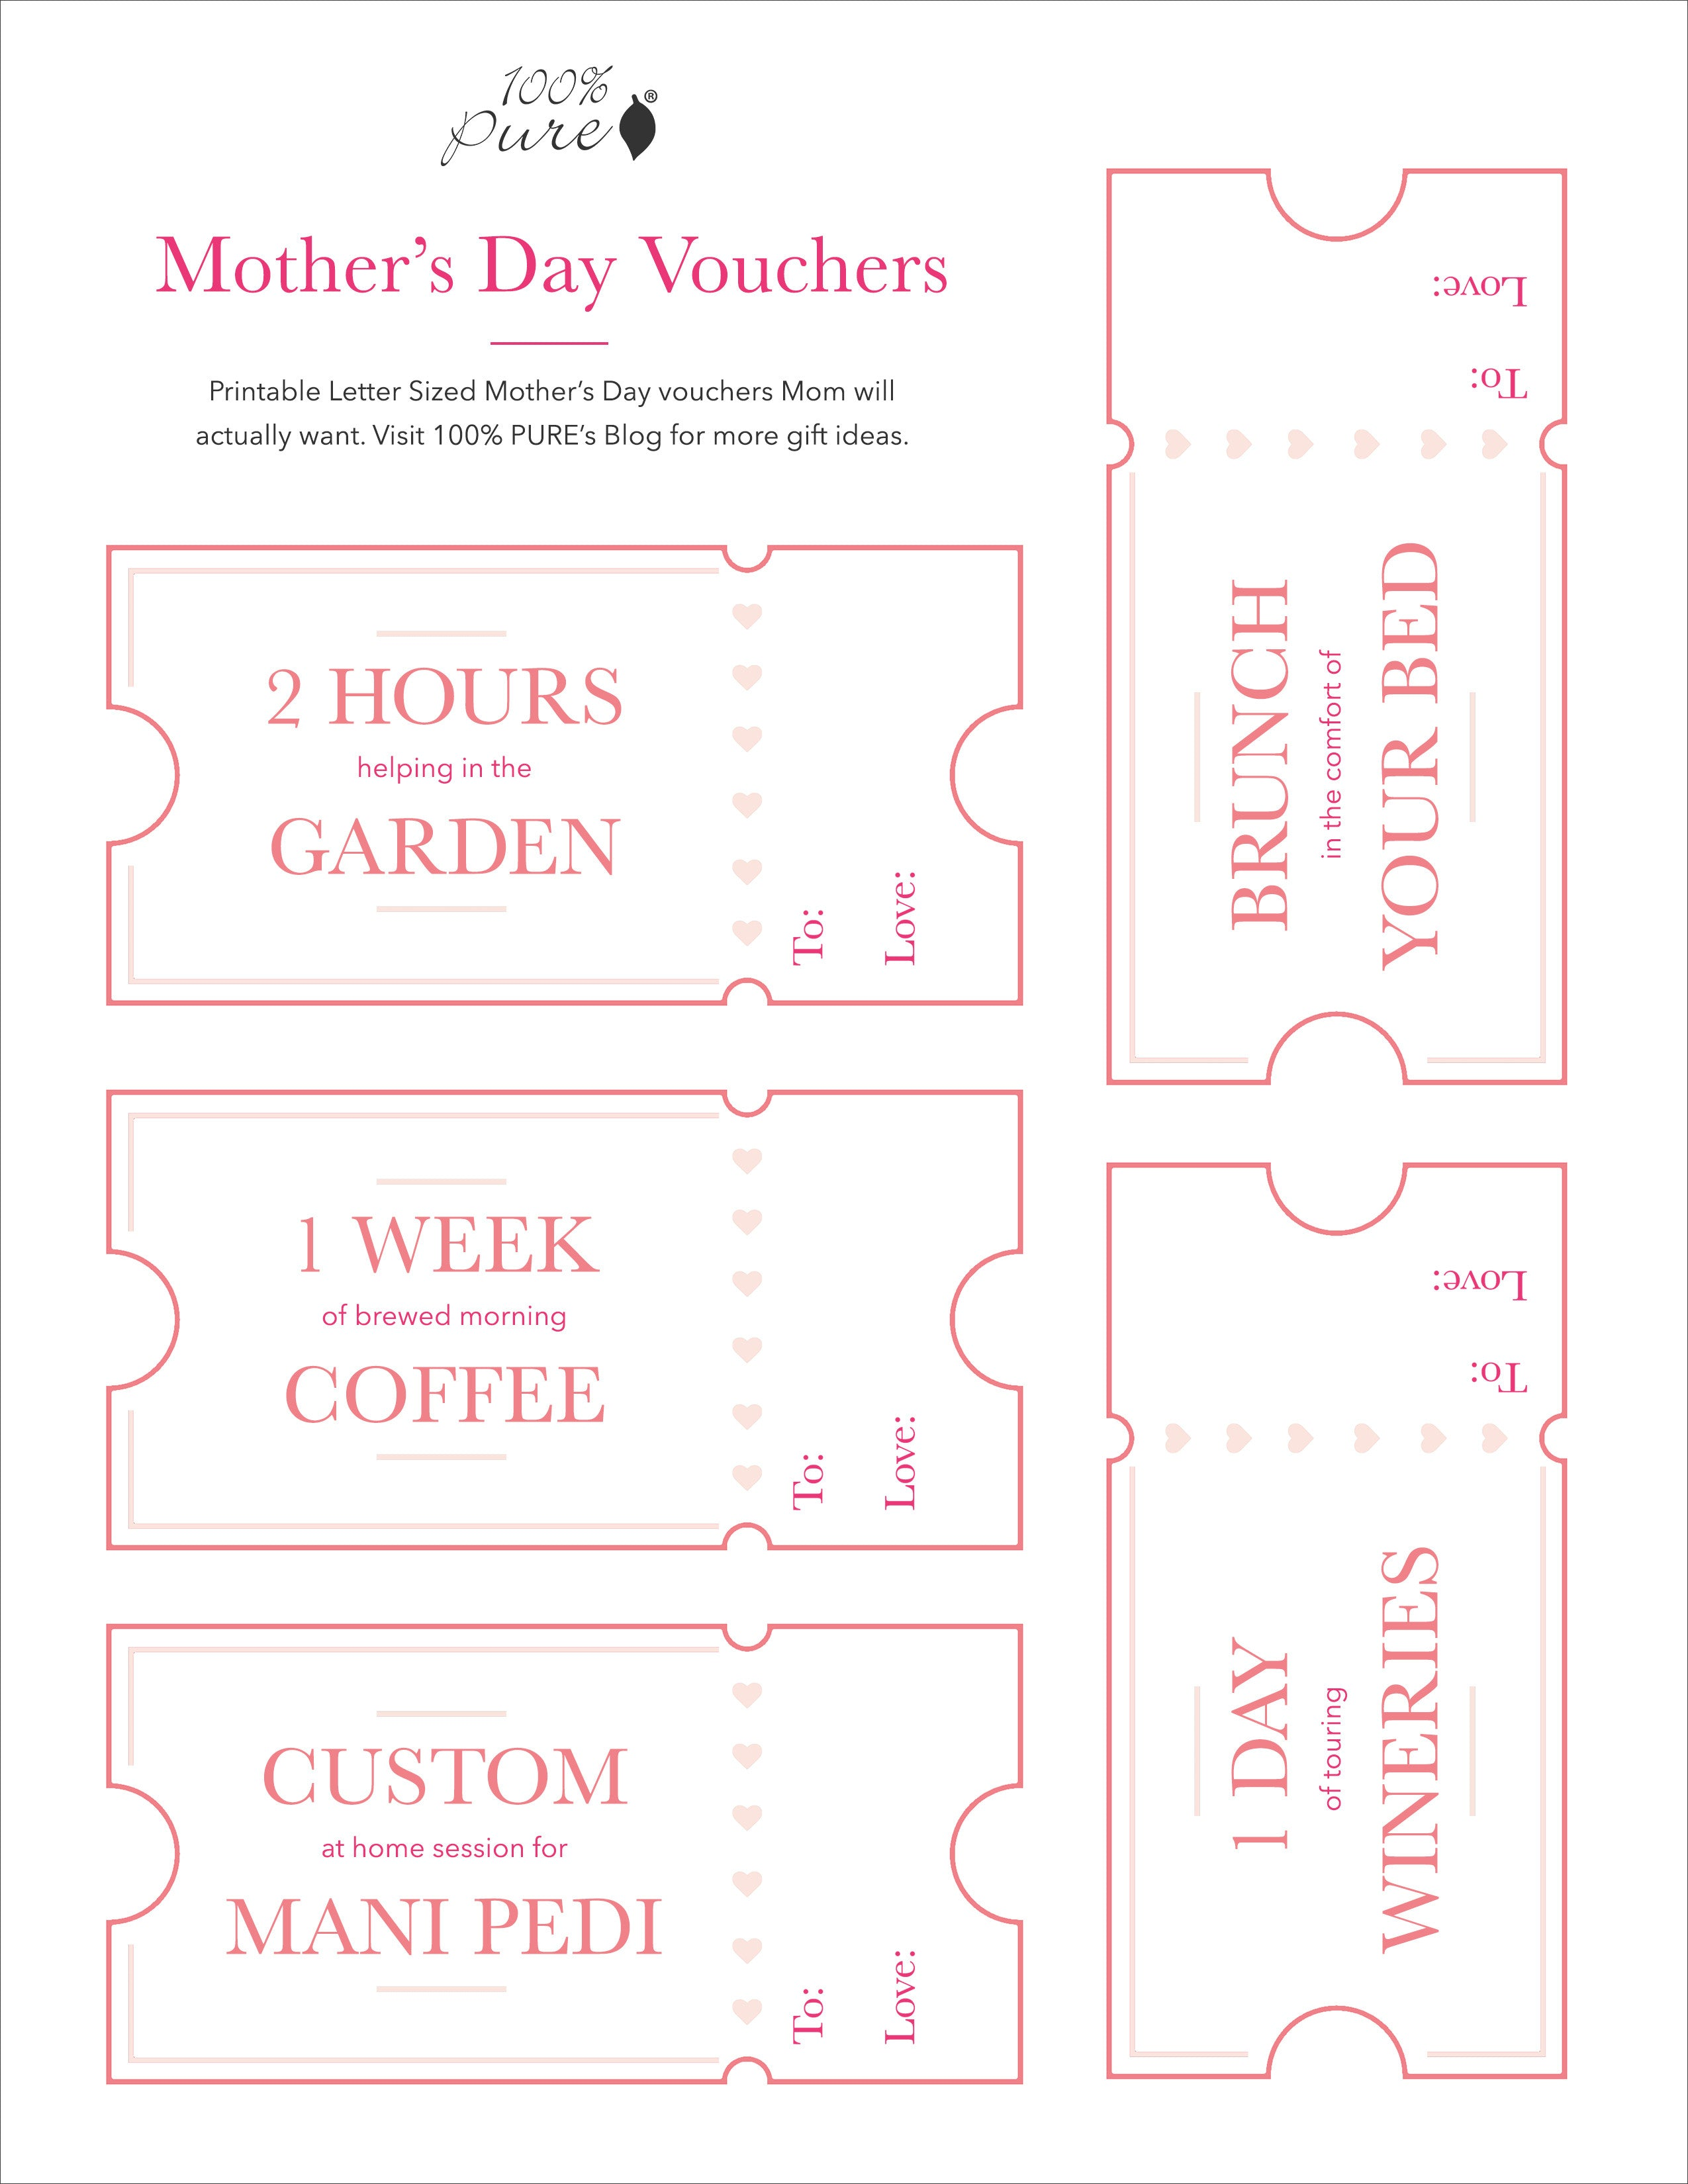 Mothers Day coupon printout